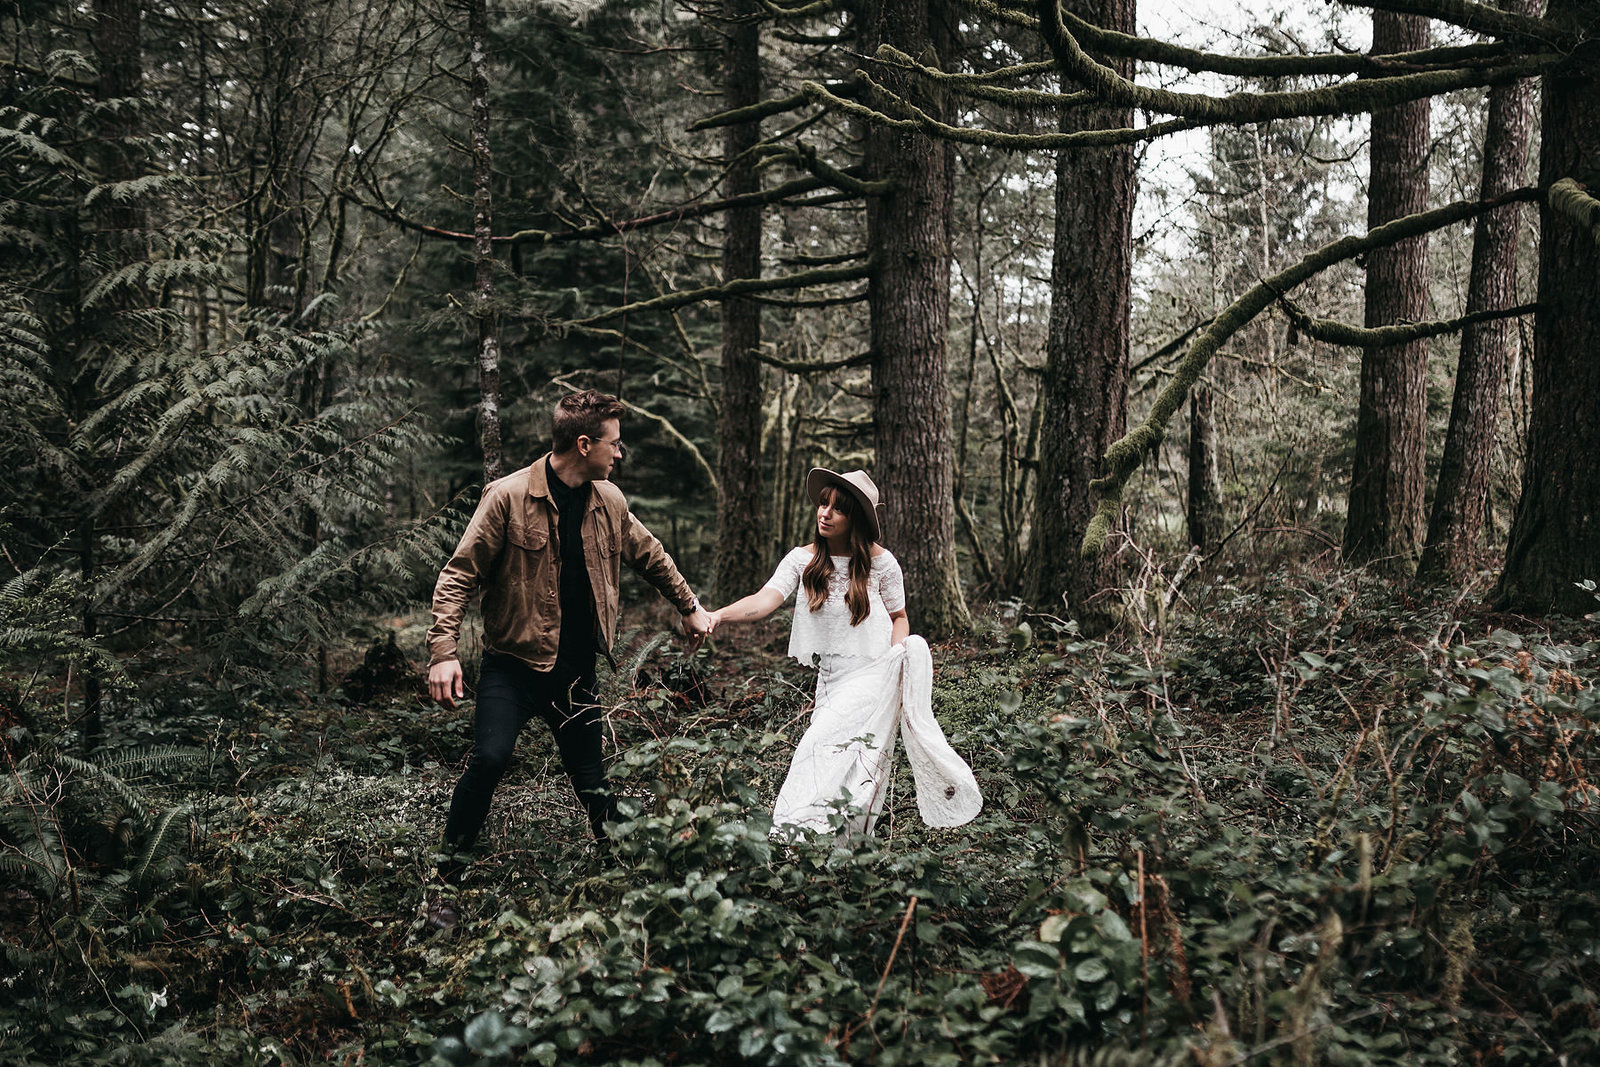 white-magazine-athena-camron-seattle-oregon-wedding-photography-woodlands-house-boho-elopement-inspiration-53